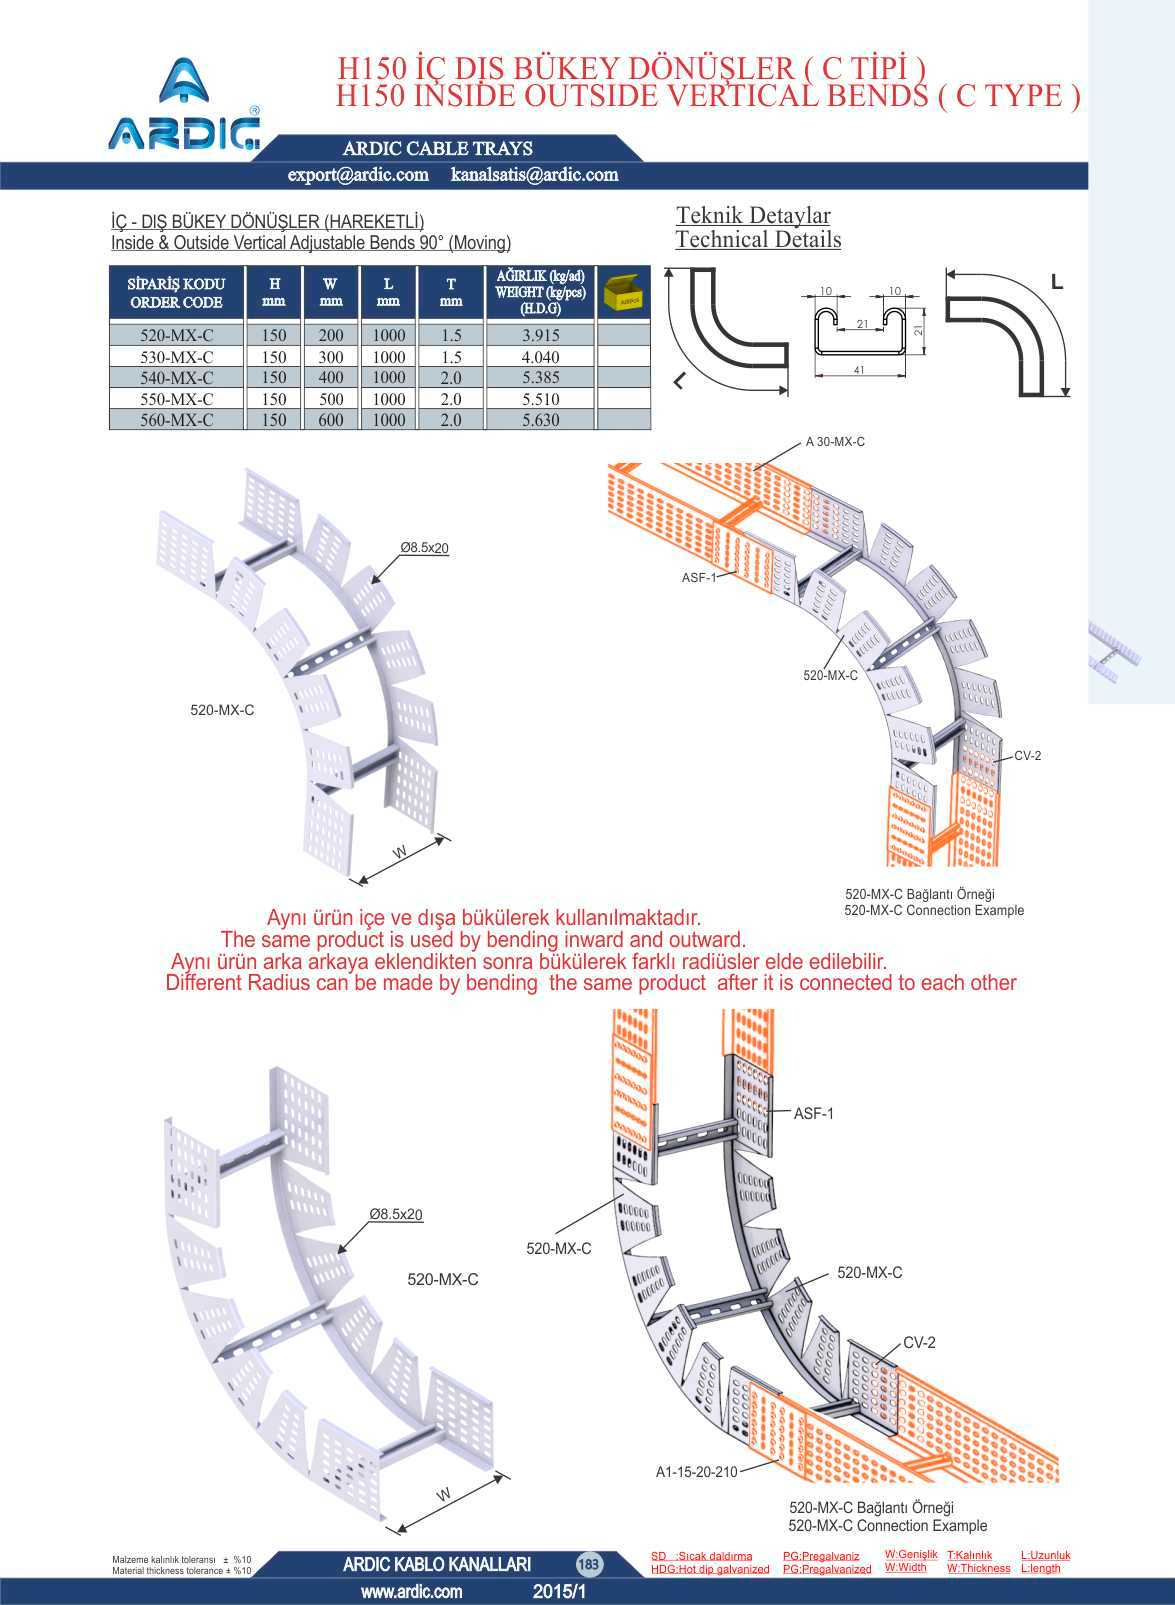 Ard Cable Trays 444 13 64 Ladder Wiring Diagram Images Of Wire 6 H150 C Type Insde Outside Vertical Bends Adjustable